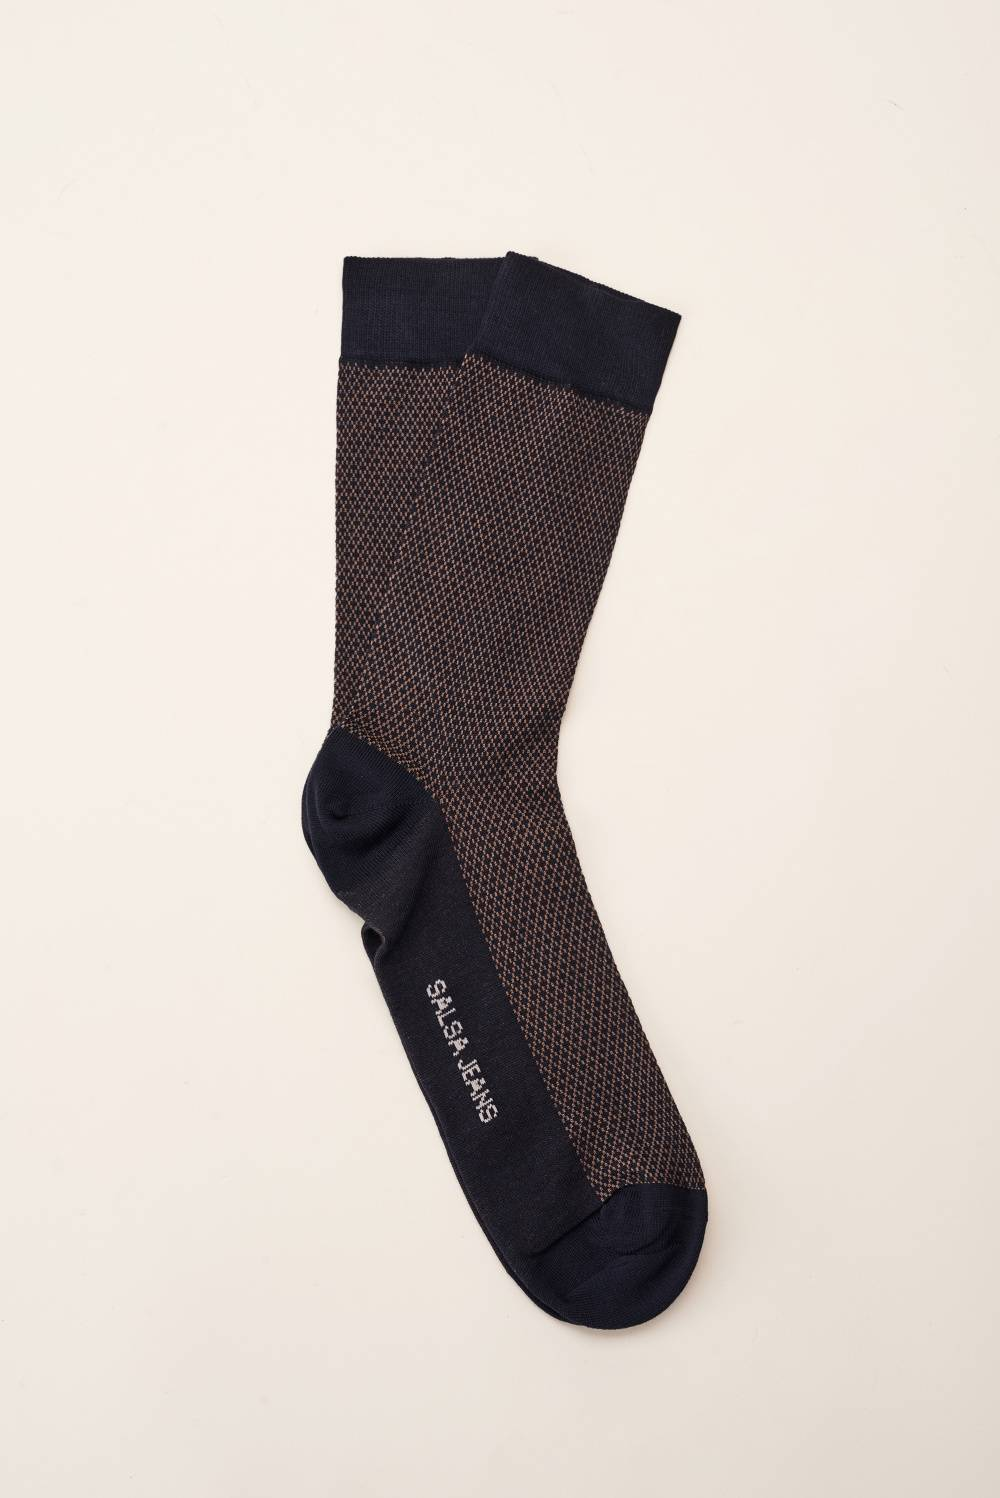 Pack of 4 socks - Salsa